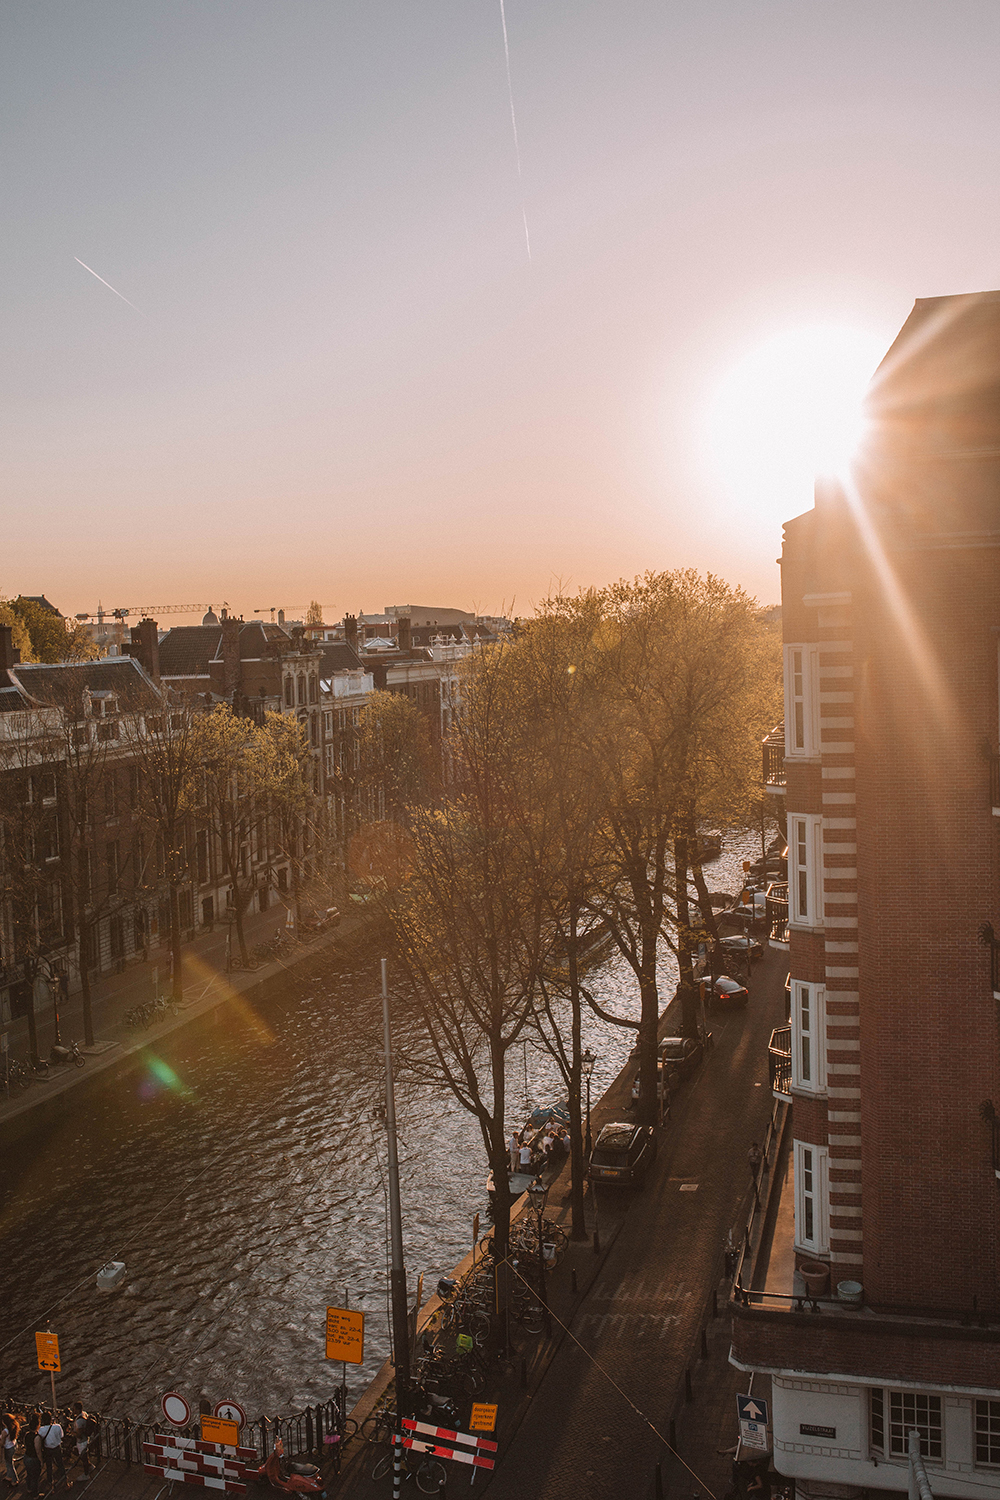 A luxurious stay in Amsterdam at the Banks Mansion